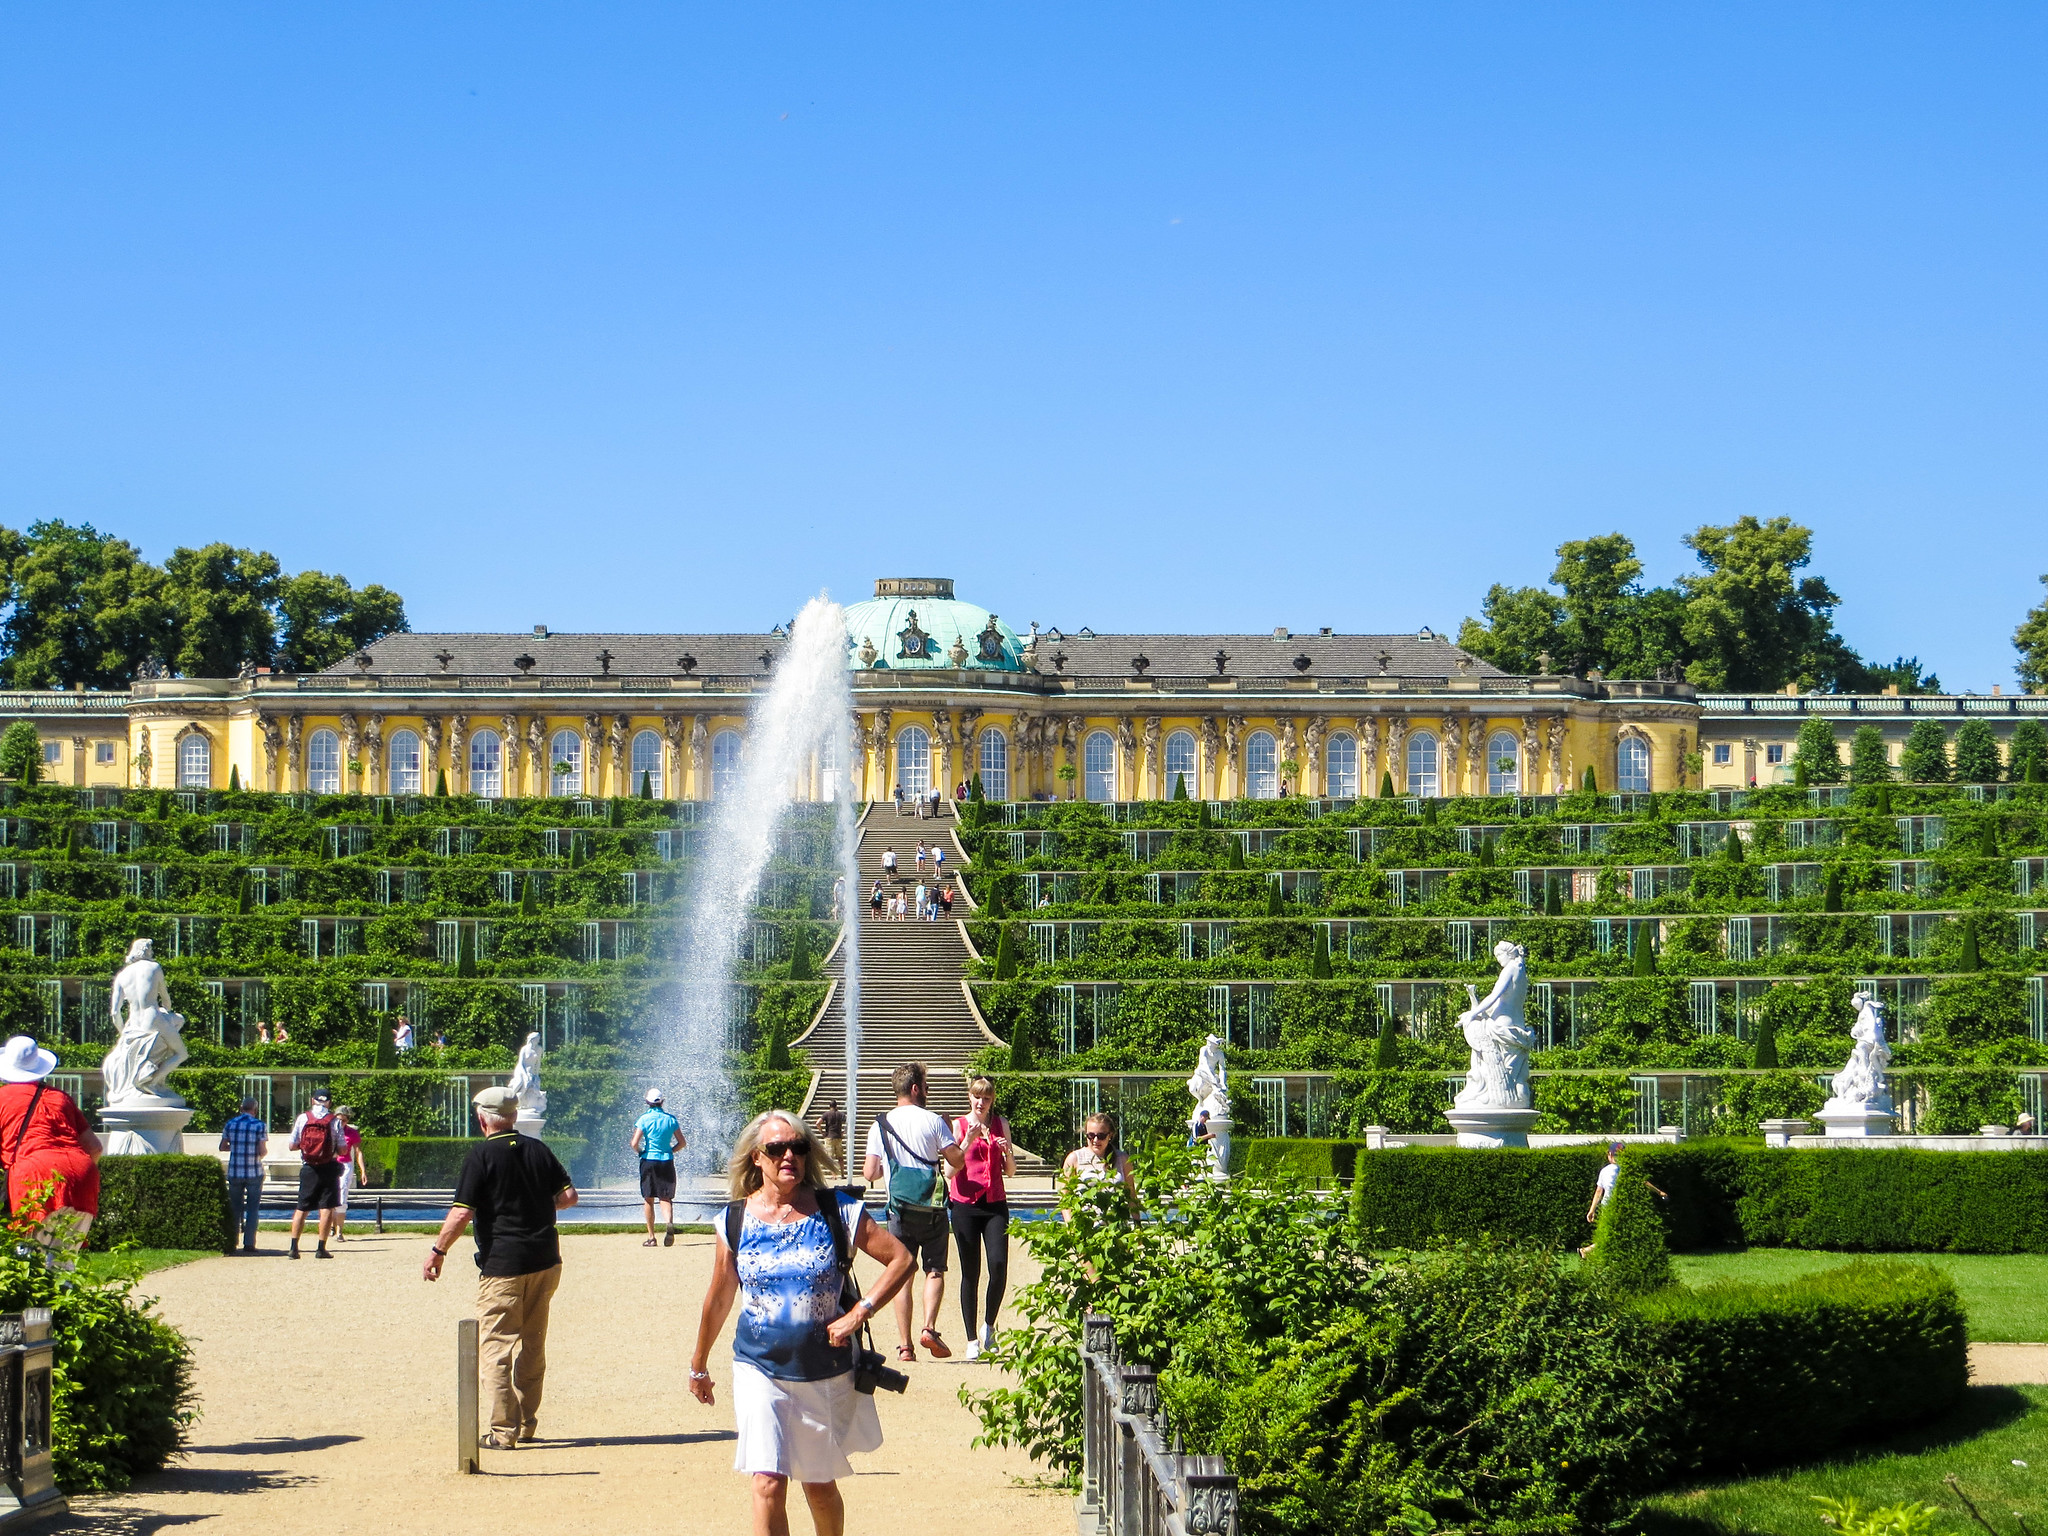 is berlin safe to travel alone? yes especially in nearby potsdam